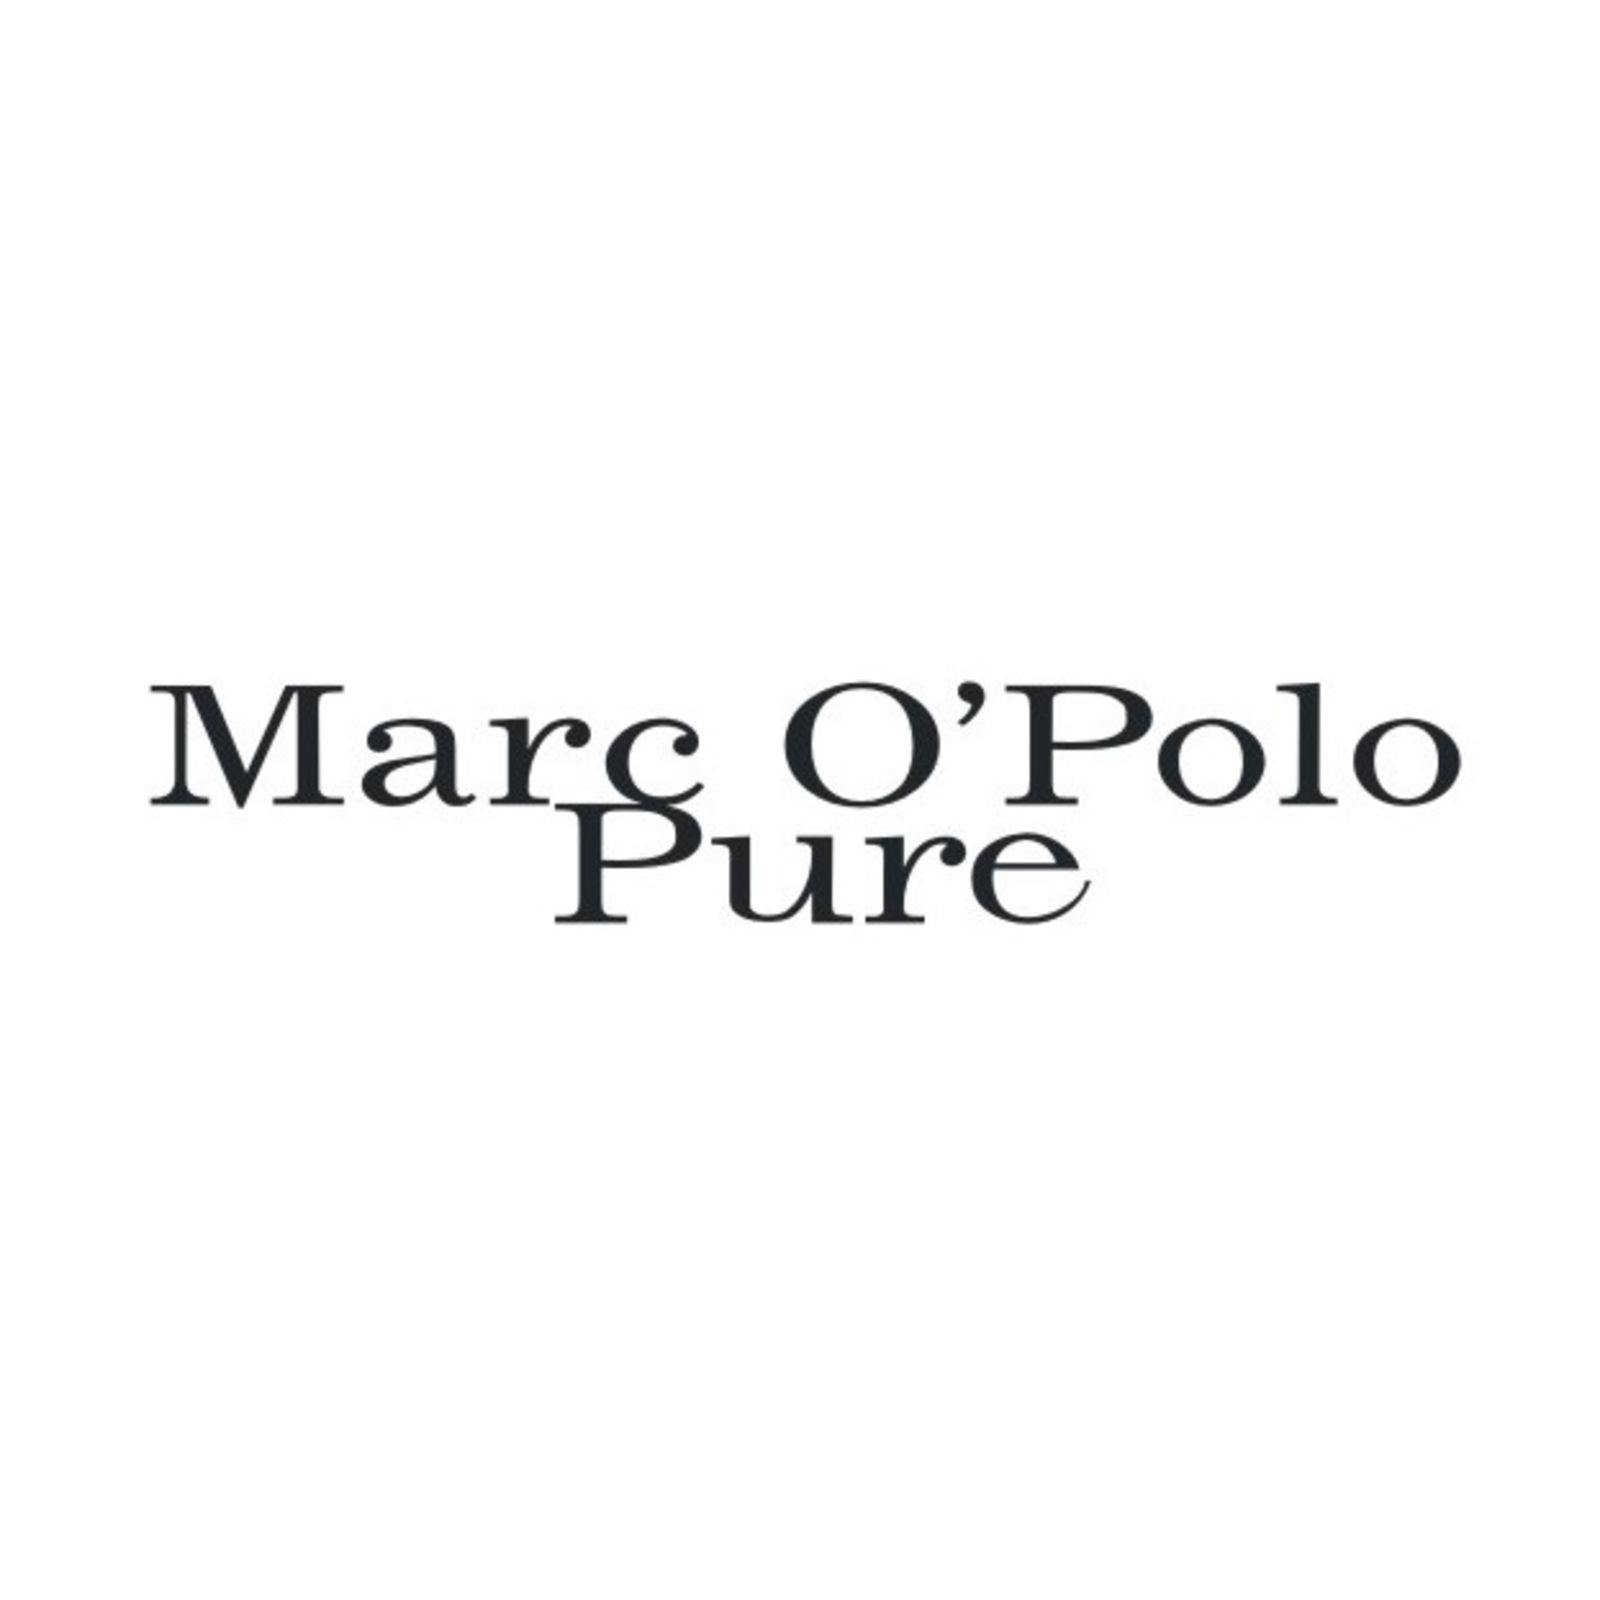 Marc O'Polo Pure